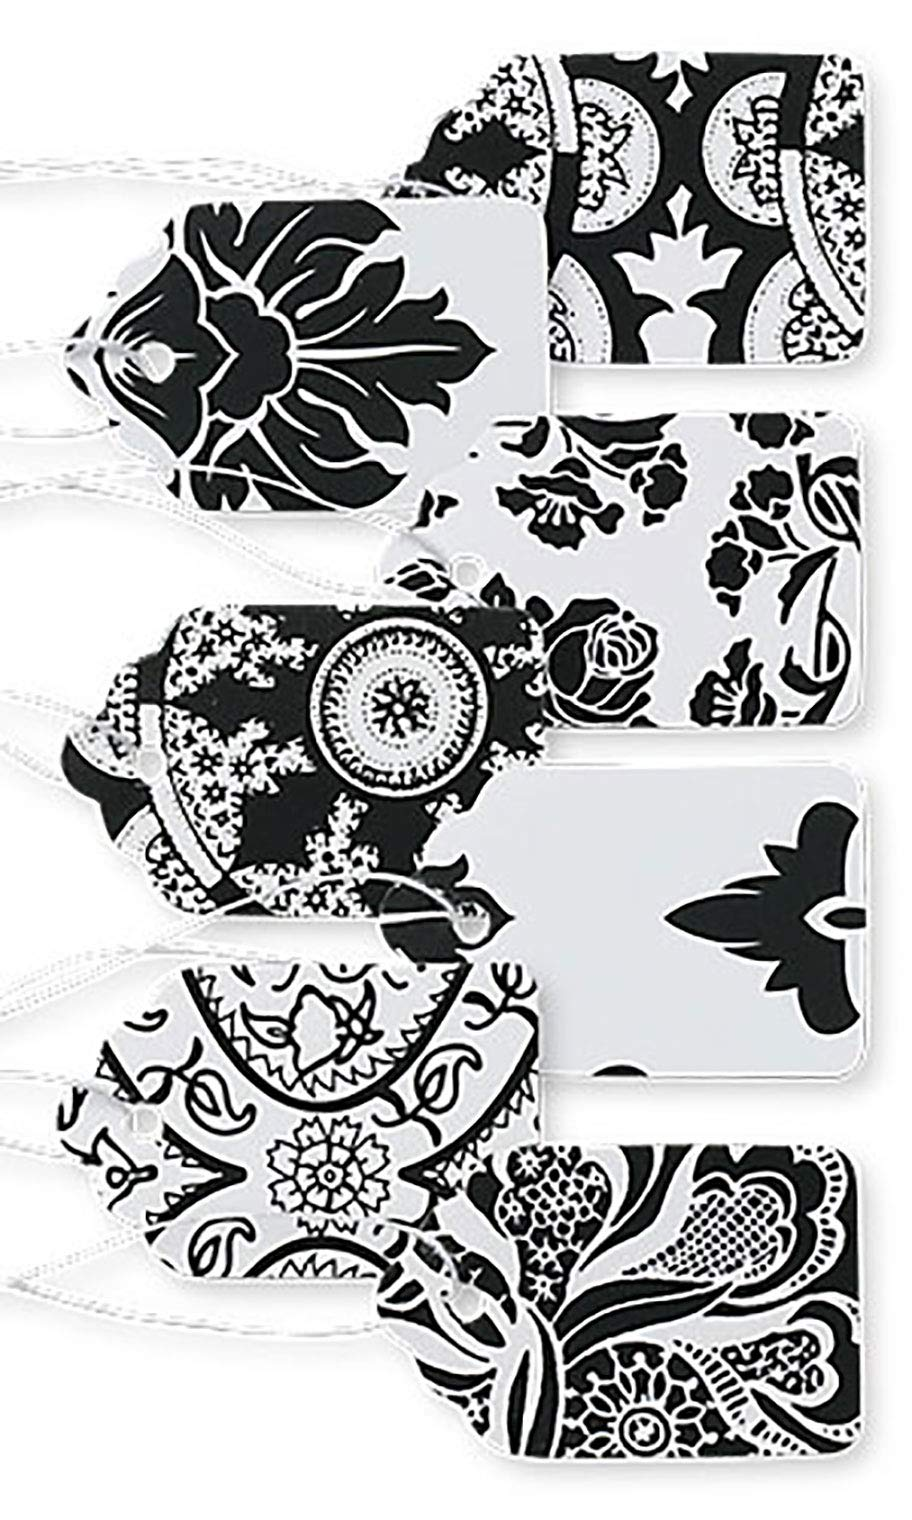 Boutique Strung Black and White Lace Paper Price Tag Assortment - 1 1/16''W x 1 5/8''H - Pack of 500